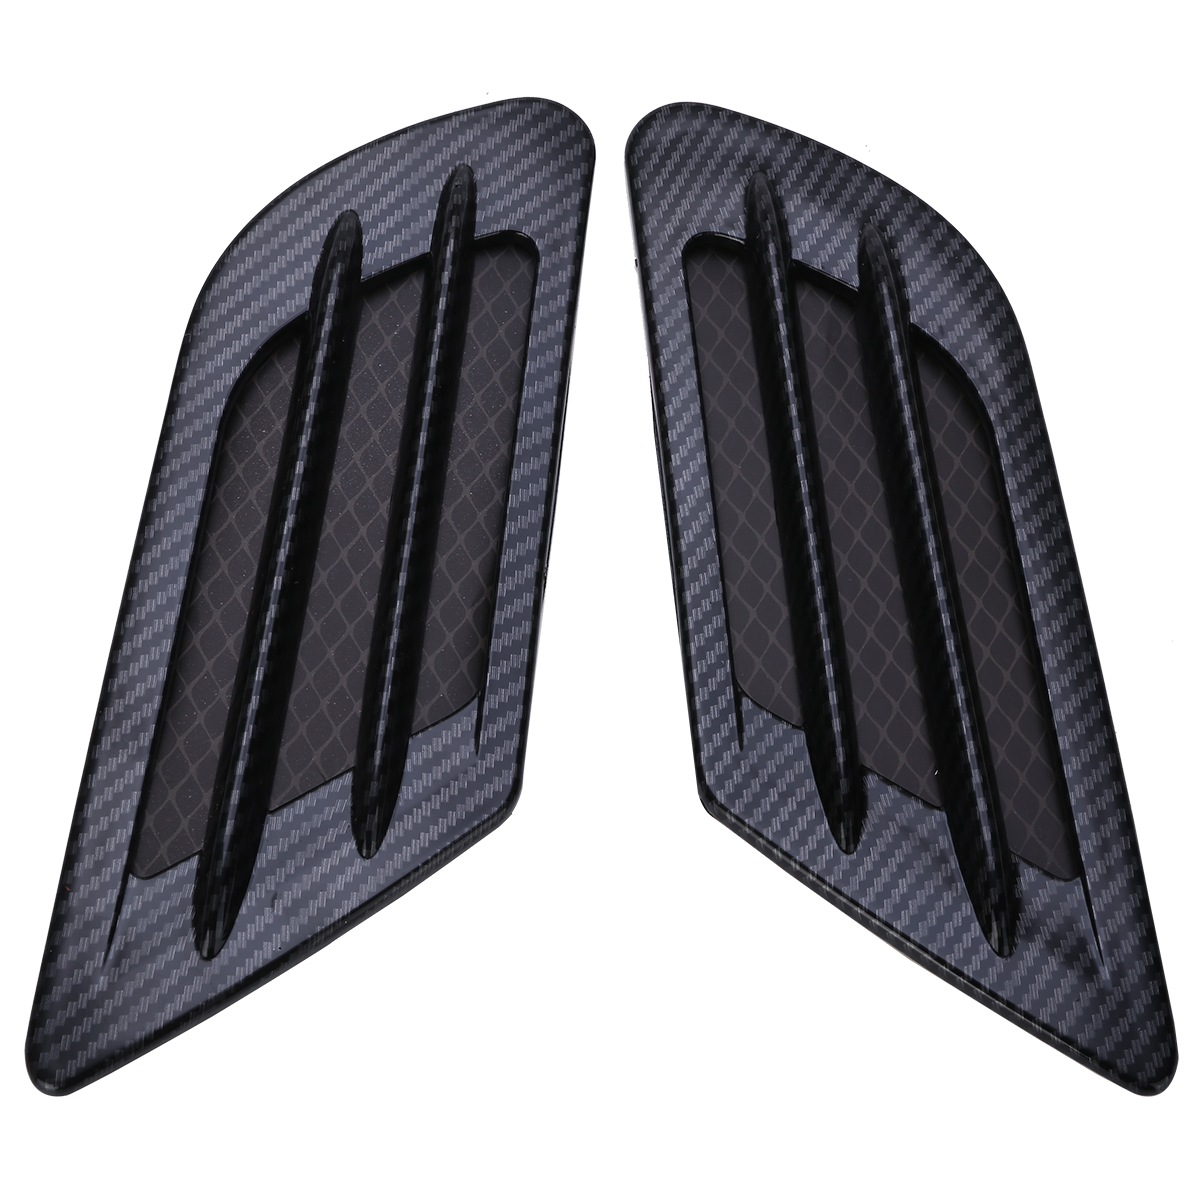 2pcs Car Styling Carbon Fiber Side Vent Air Flow Bonnet Hood Fender Sticker Decor Car Accessories